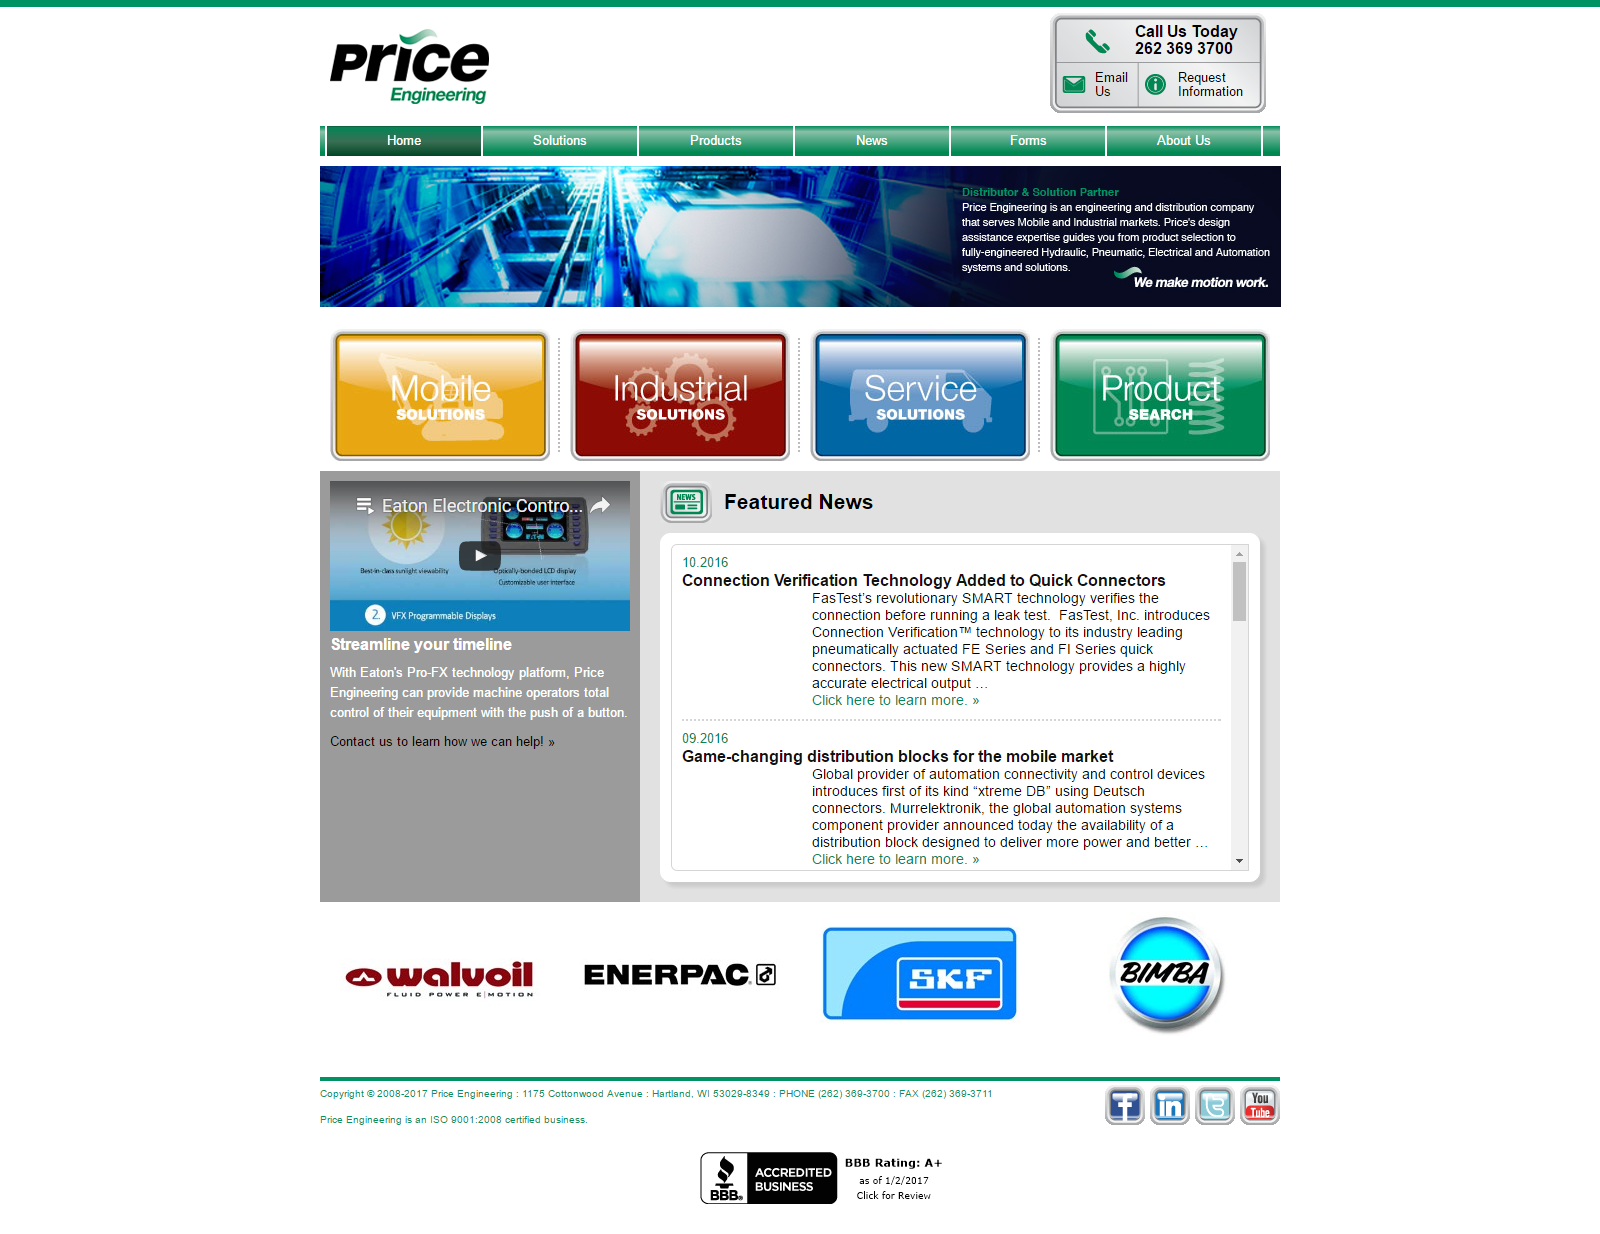 Price Engineering - Dedicated Server